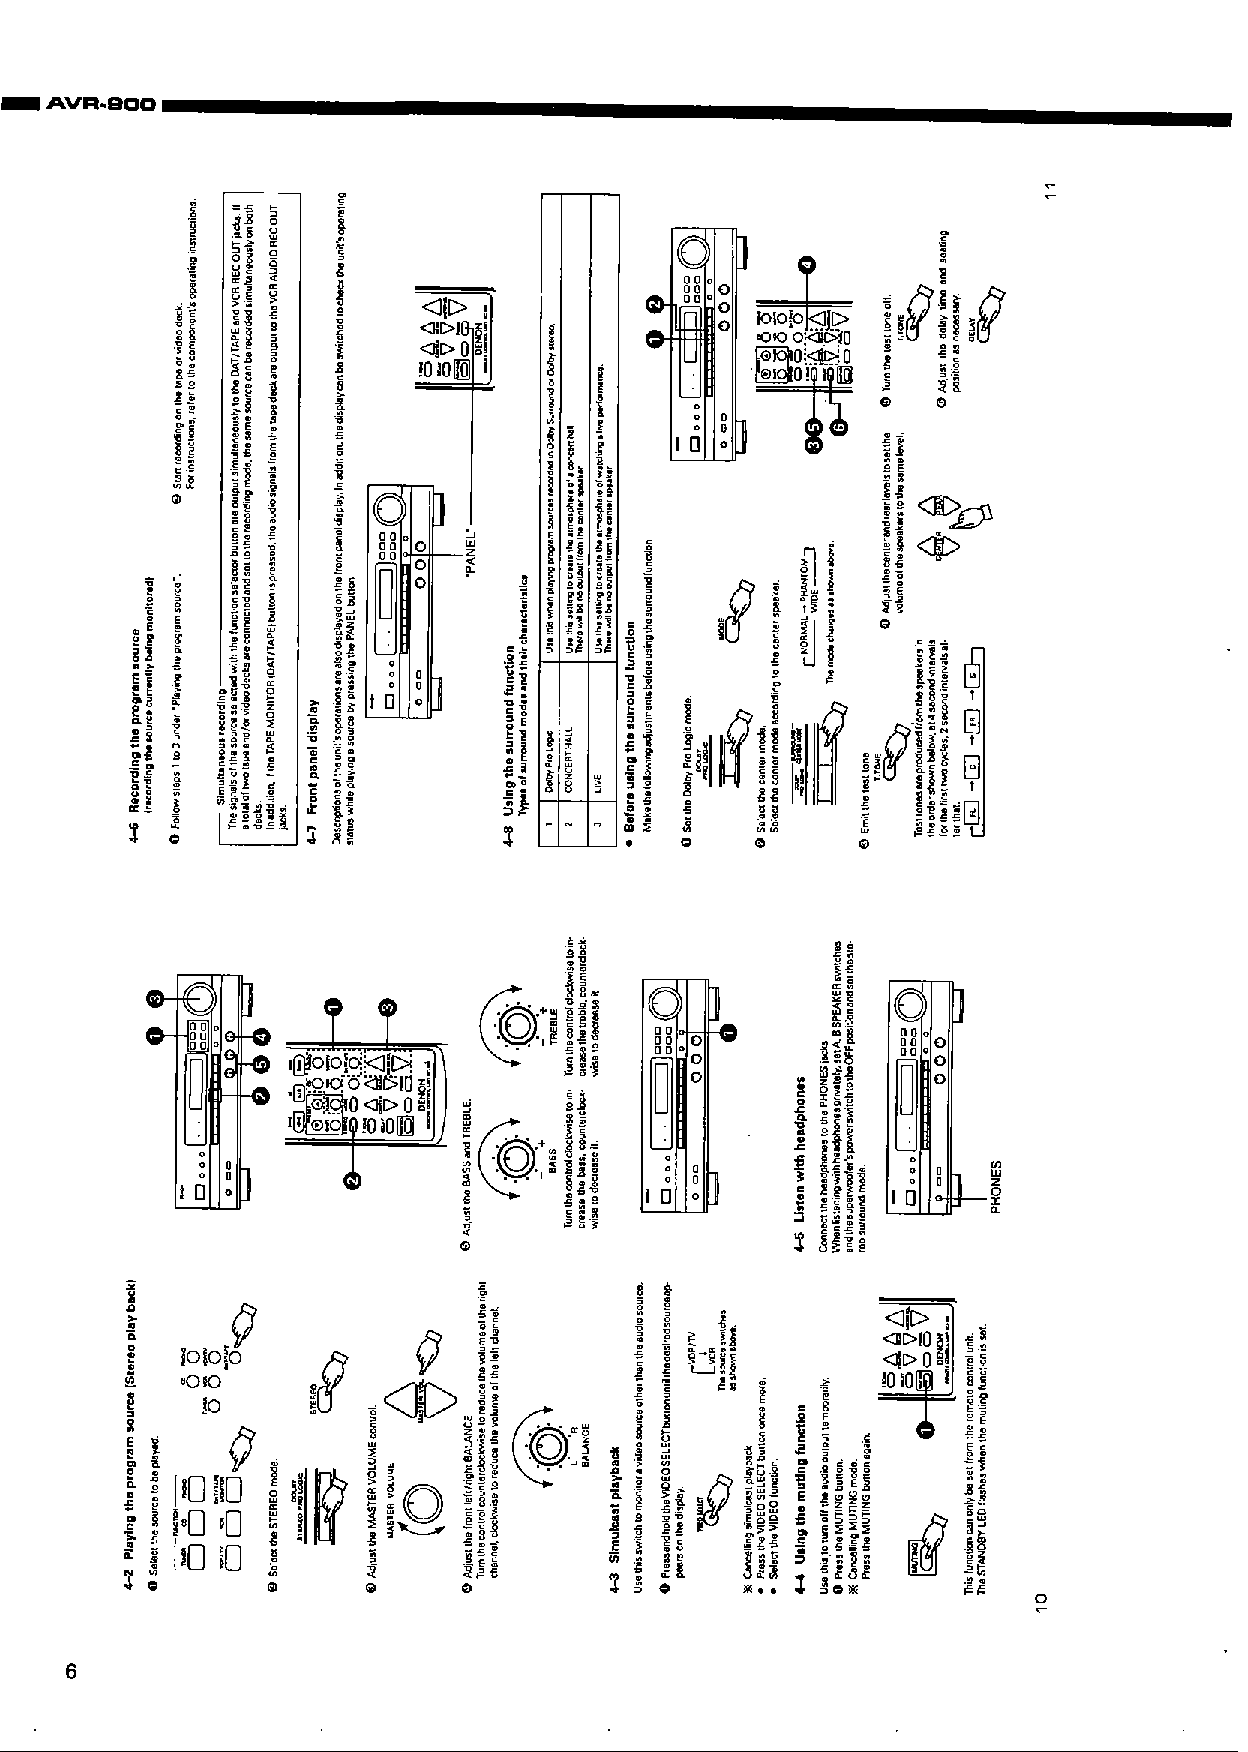 Denon AVR-900 Service Manual